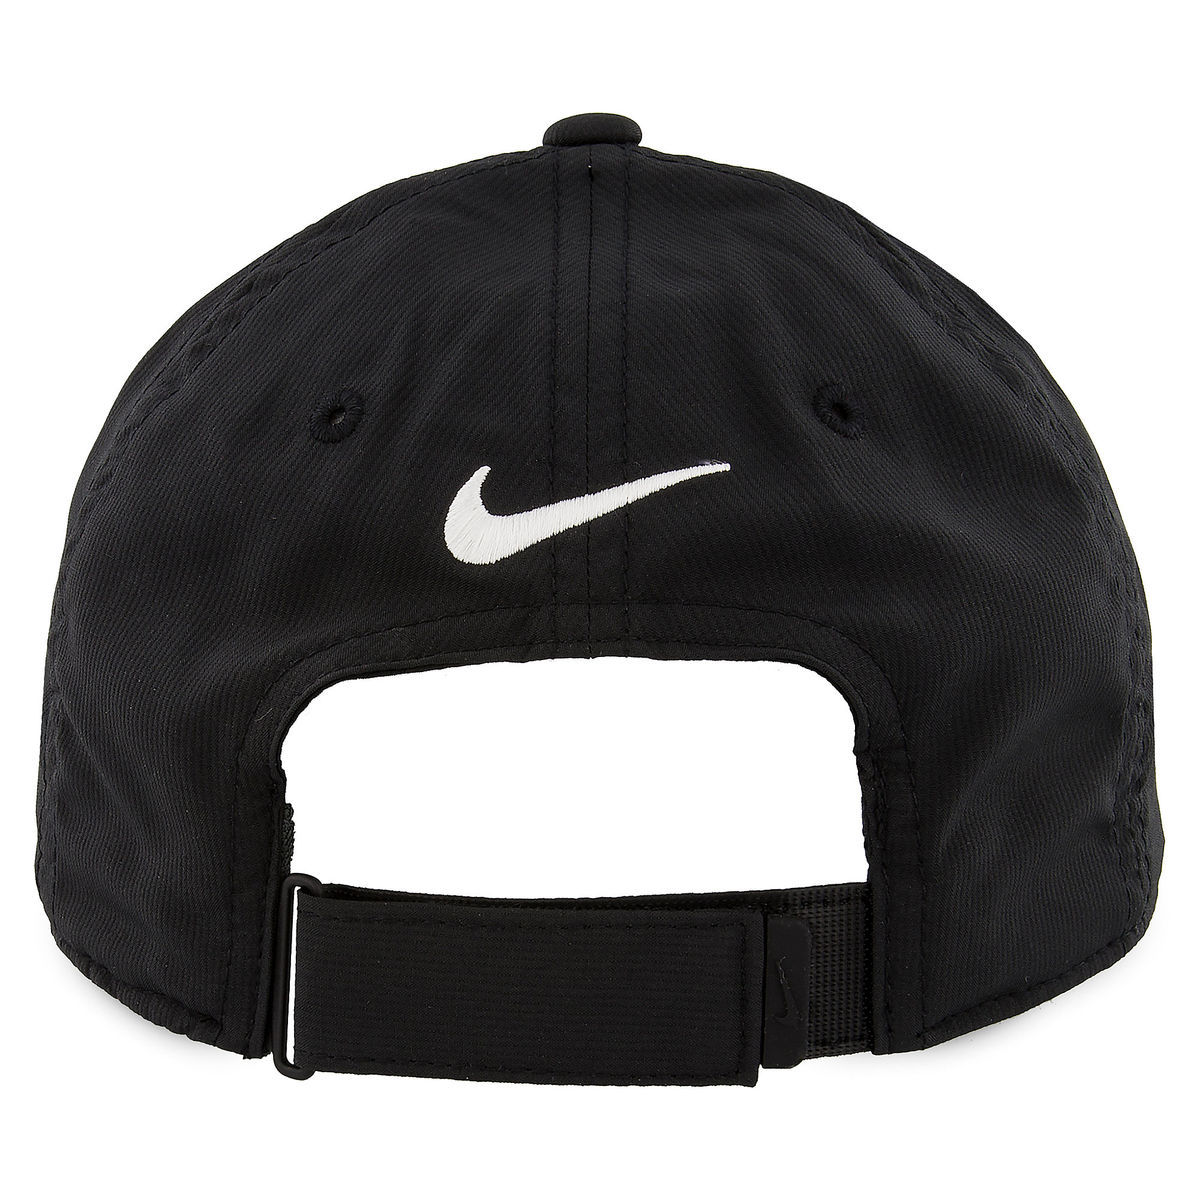 Mickey Mouse Performance Baseball Cap for Adults by Nike  d544fbaf0c6